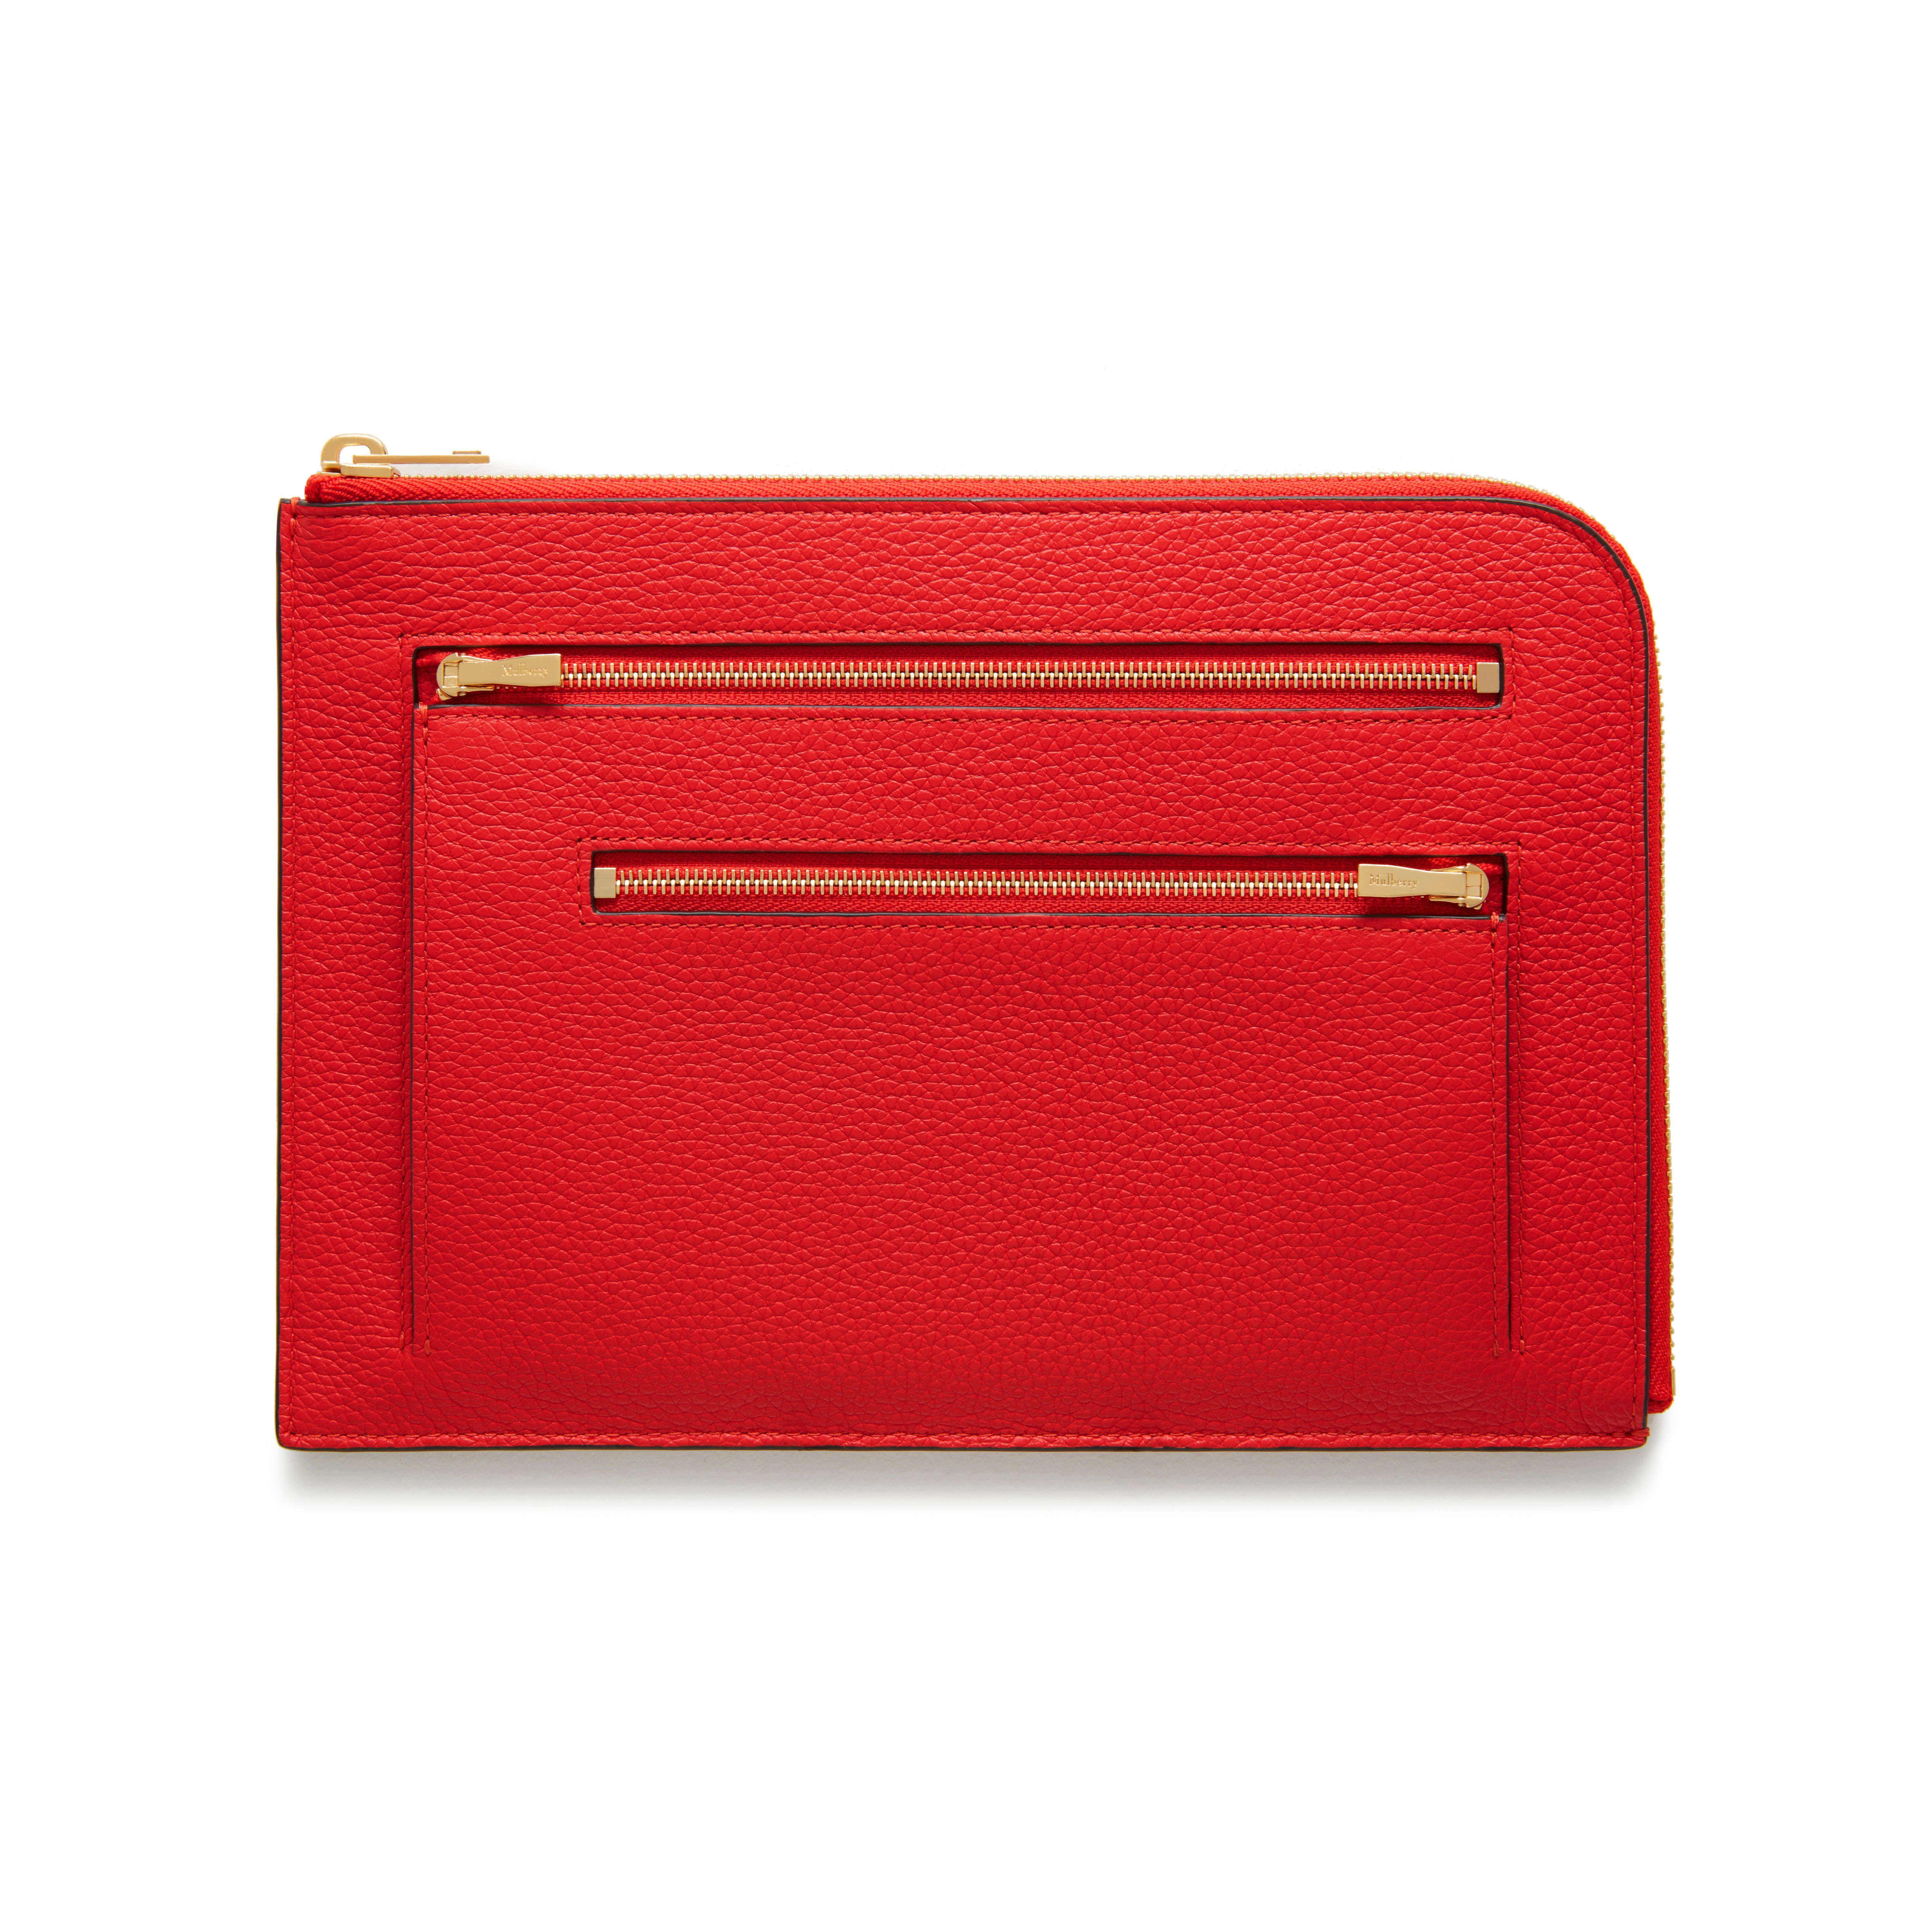 a57731df0747 Shop the Travel Pouch in Fiery Red Small Classic Grain Leather at Mulberry .com.